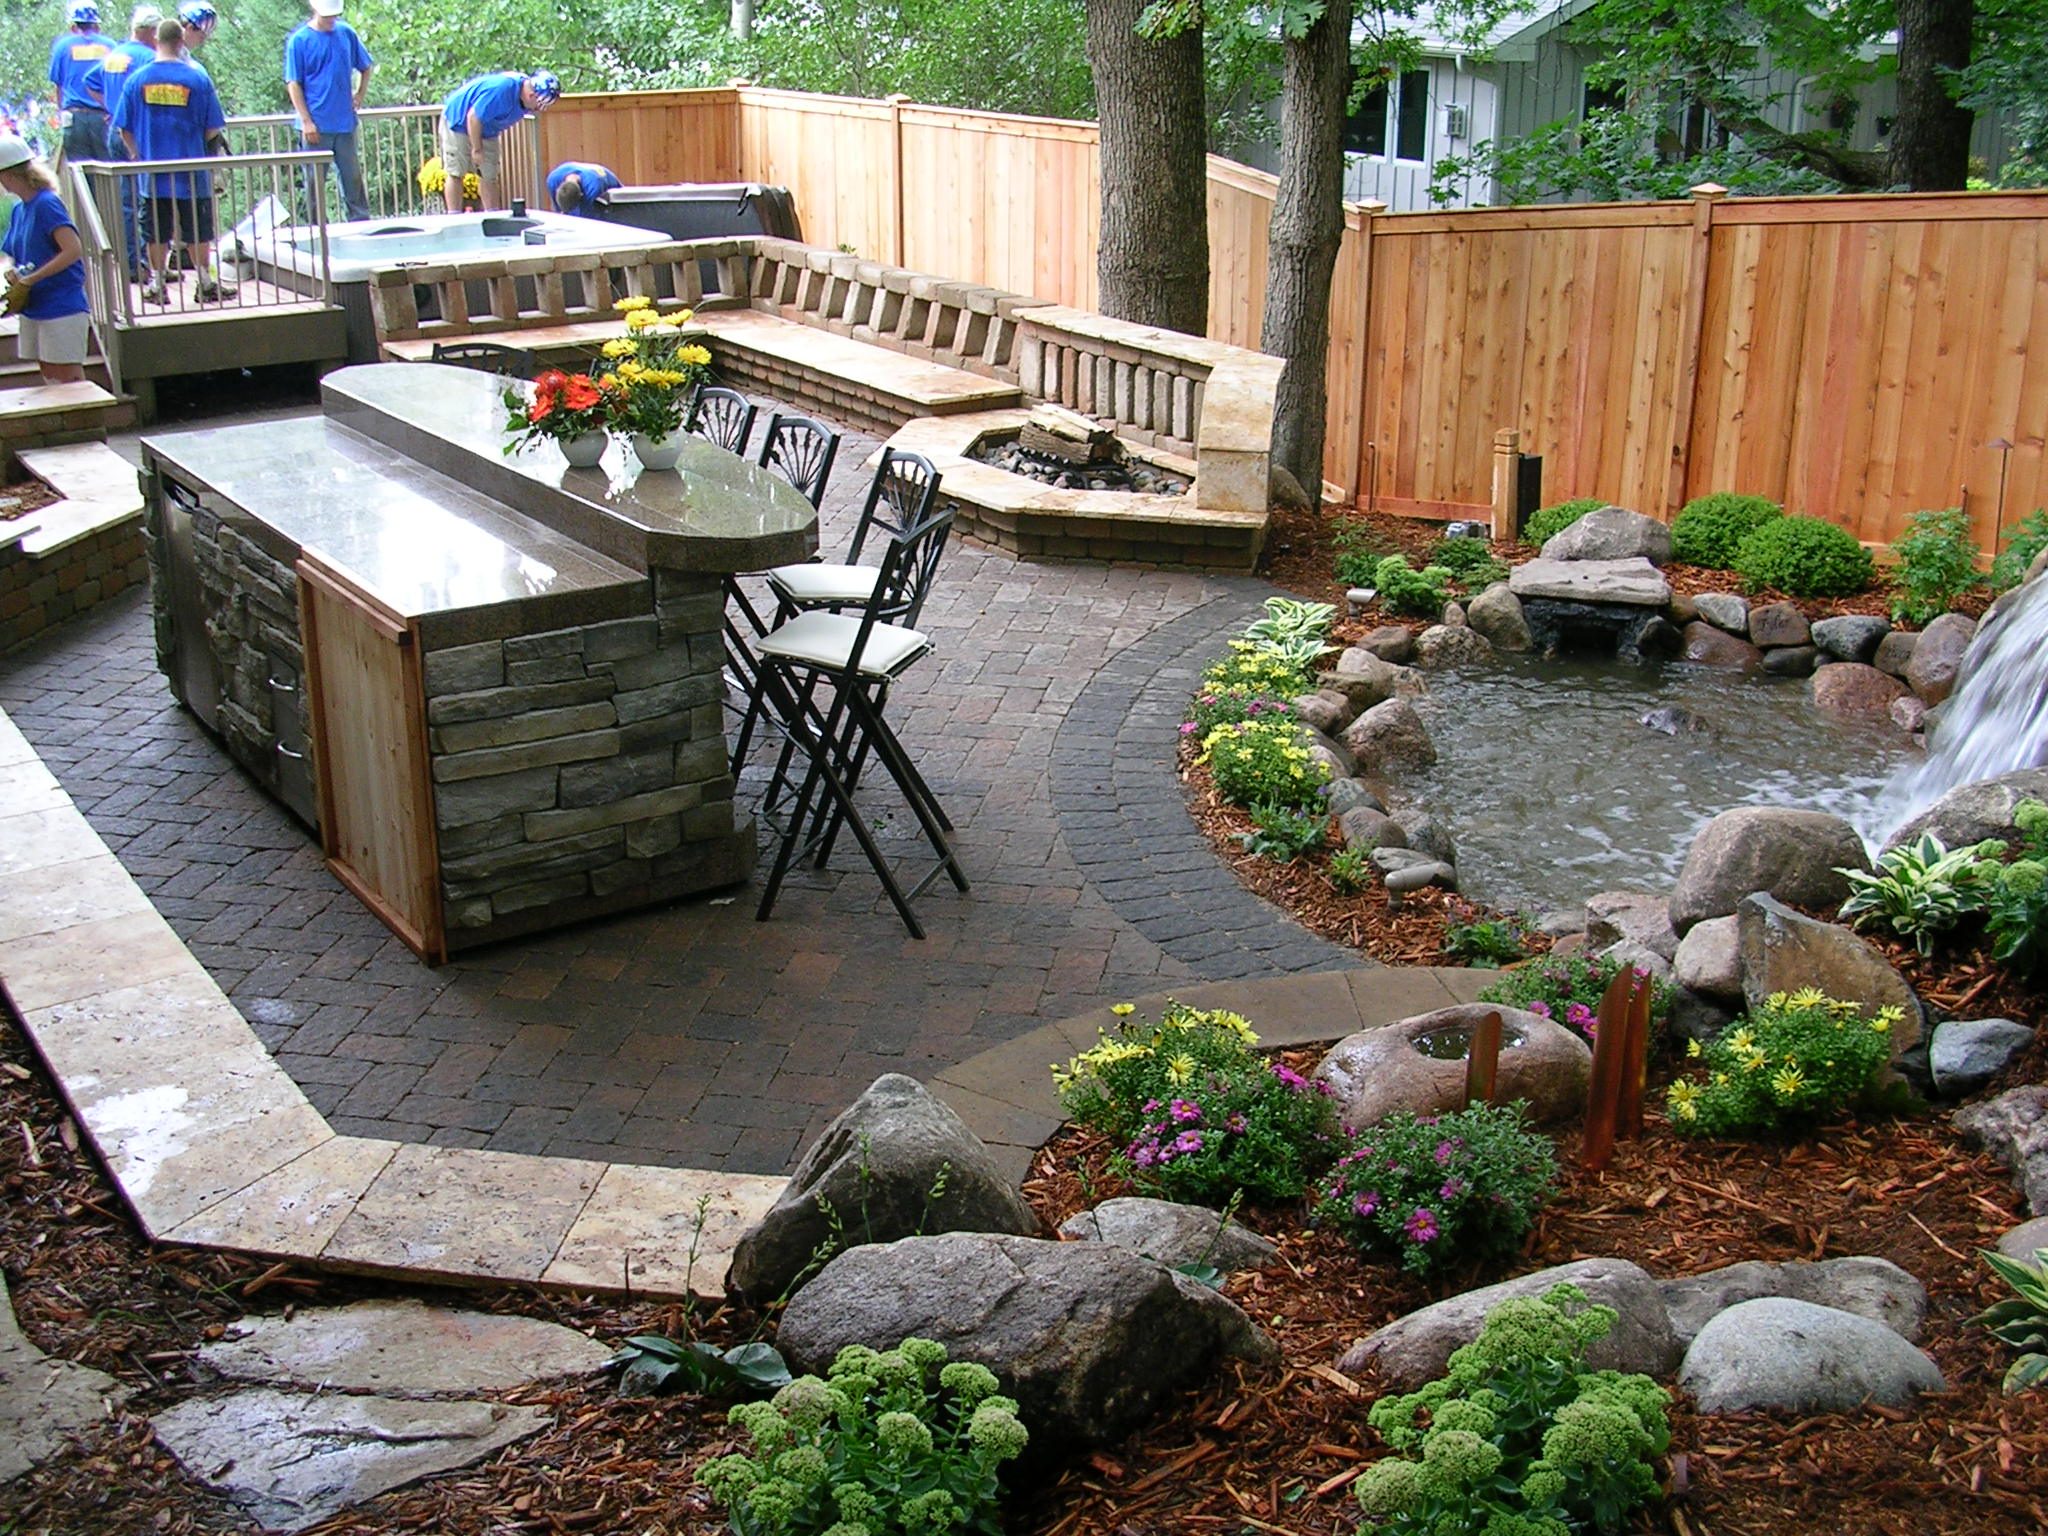 Landscape design ideas patio driveway installation - Designing backyard landscape ...